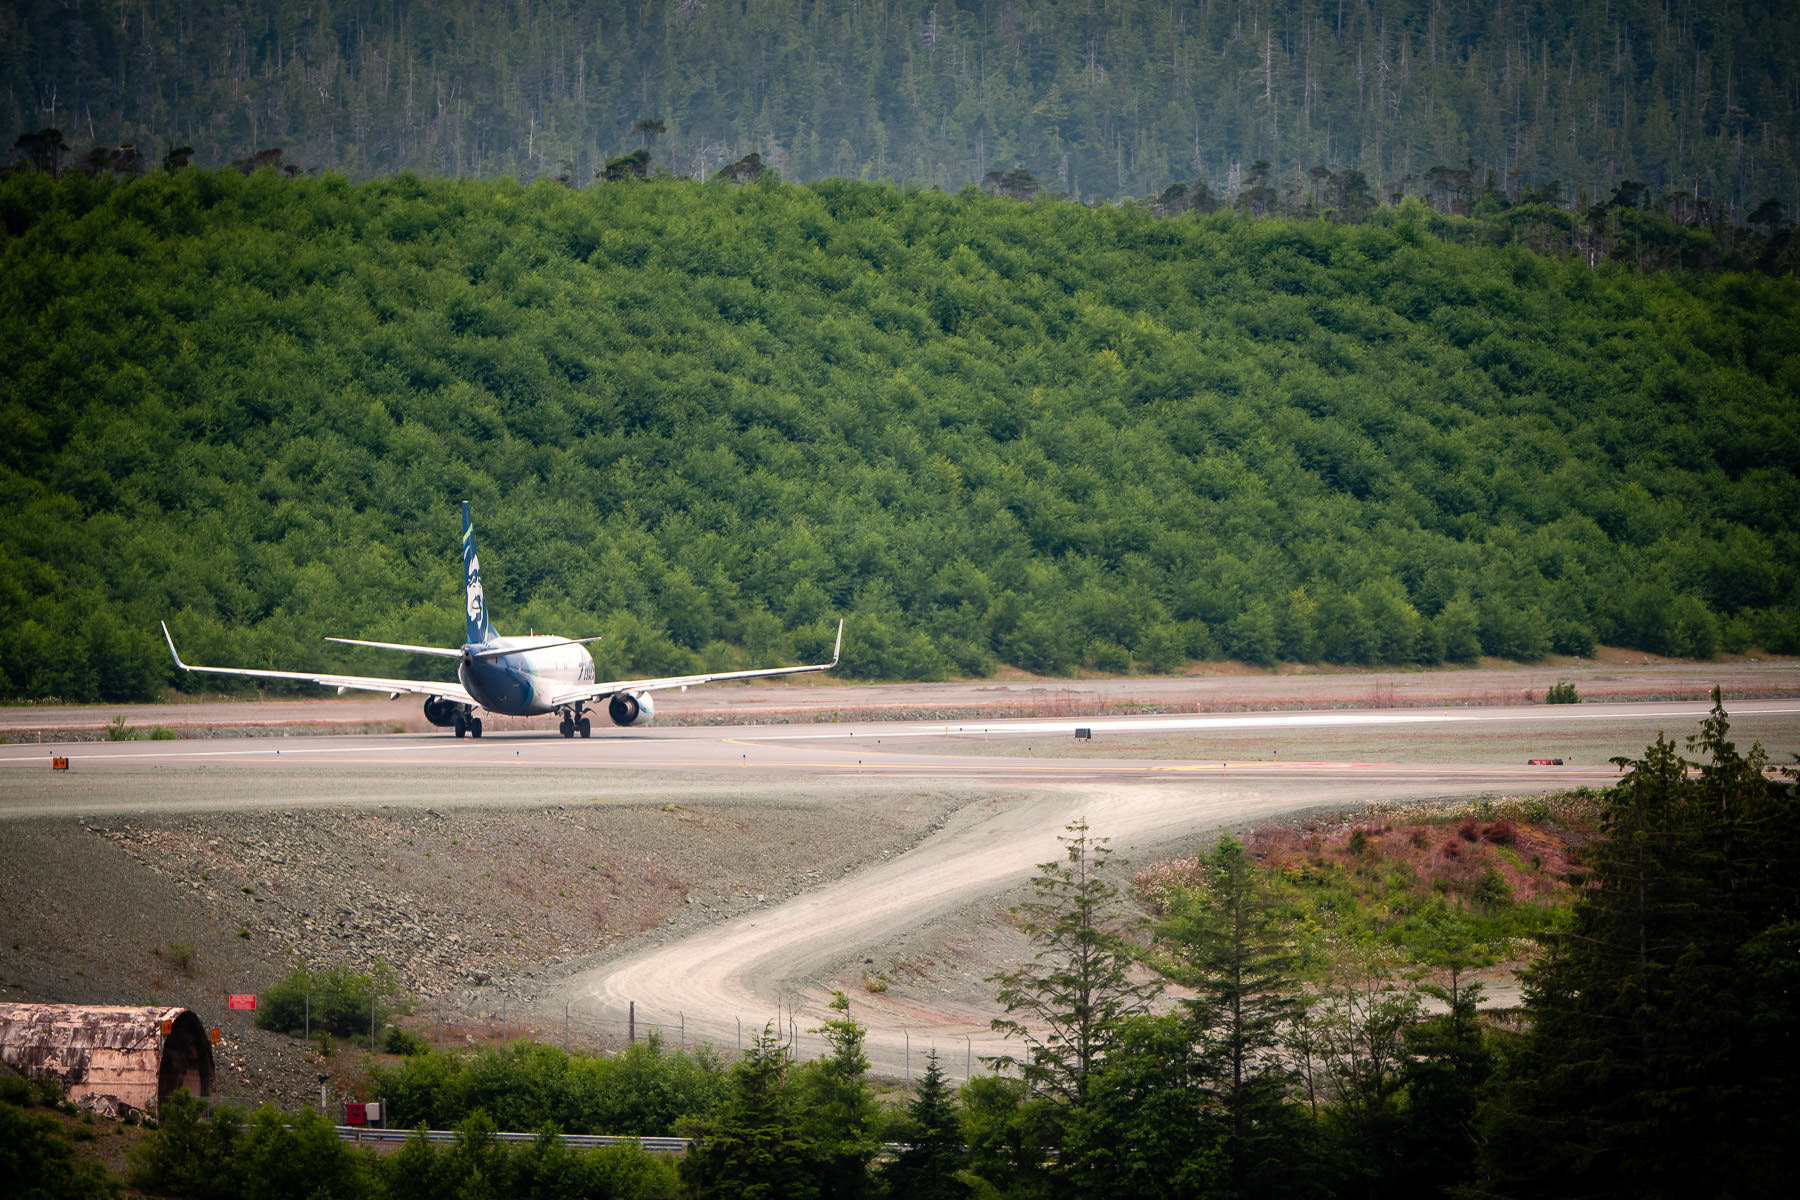 An Alaska Airlines 737 prepares to depart from Ketchikan International Airport, Alaska.